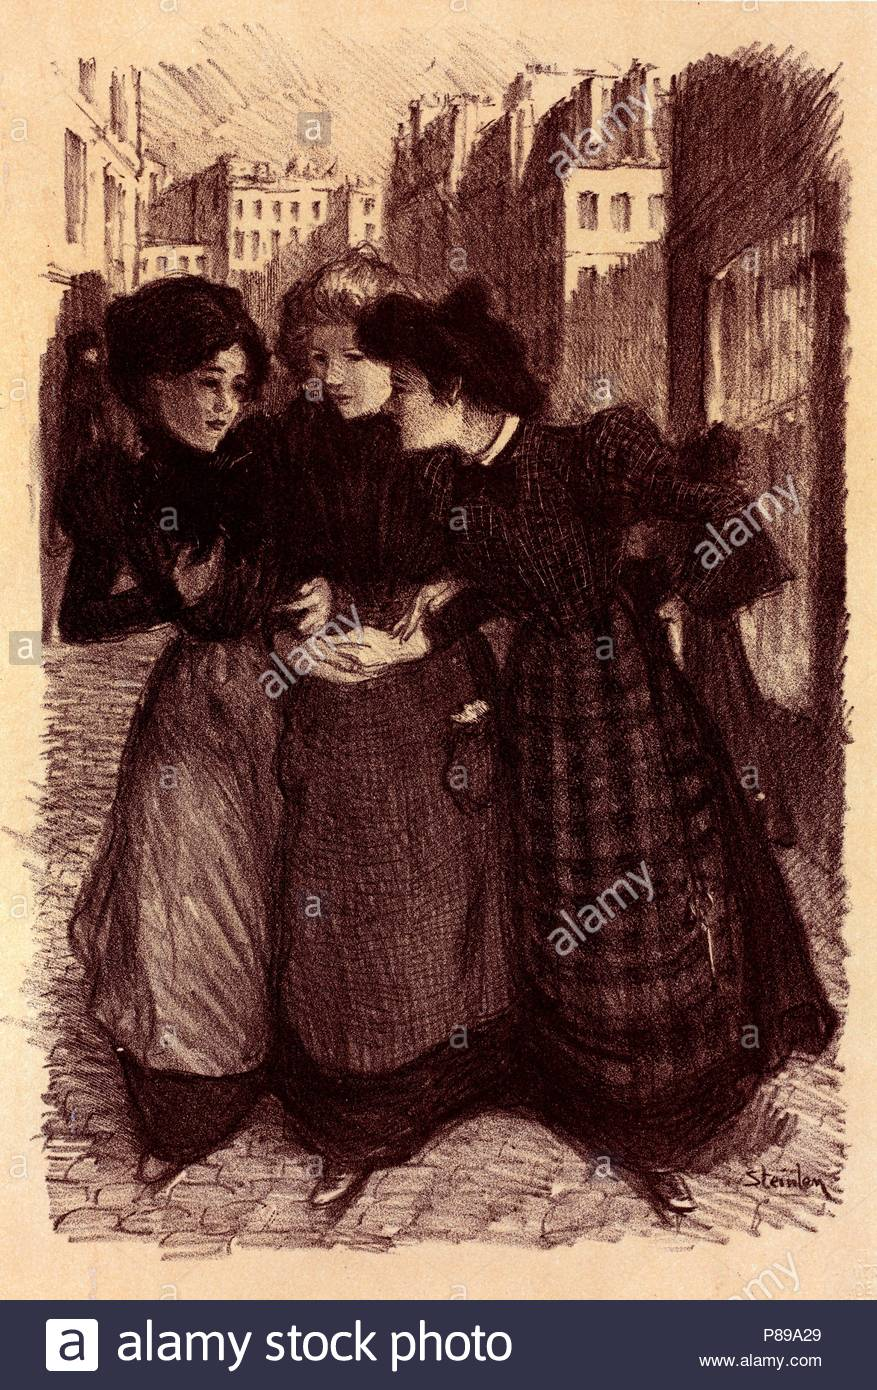 Poster or art work for Maîtres de l'Poster. Théophile Alexandre Steinlen, frequently referred to as just Steinlen 1859 – 1923, a Swiss-born French Art Nouveau painter and printmaker. - Stock Image